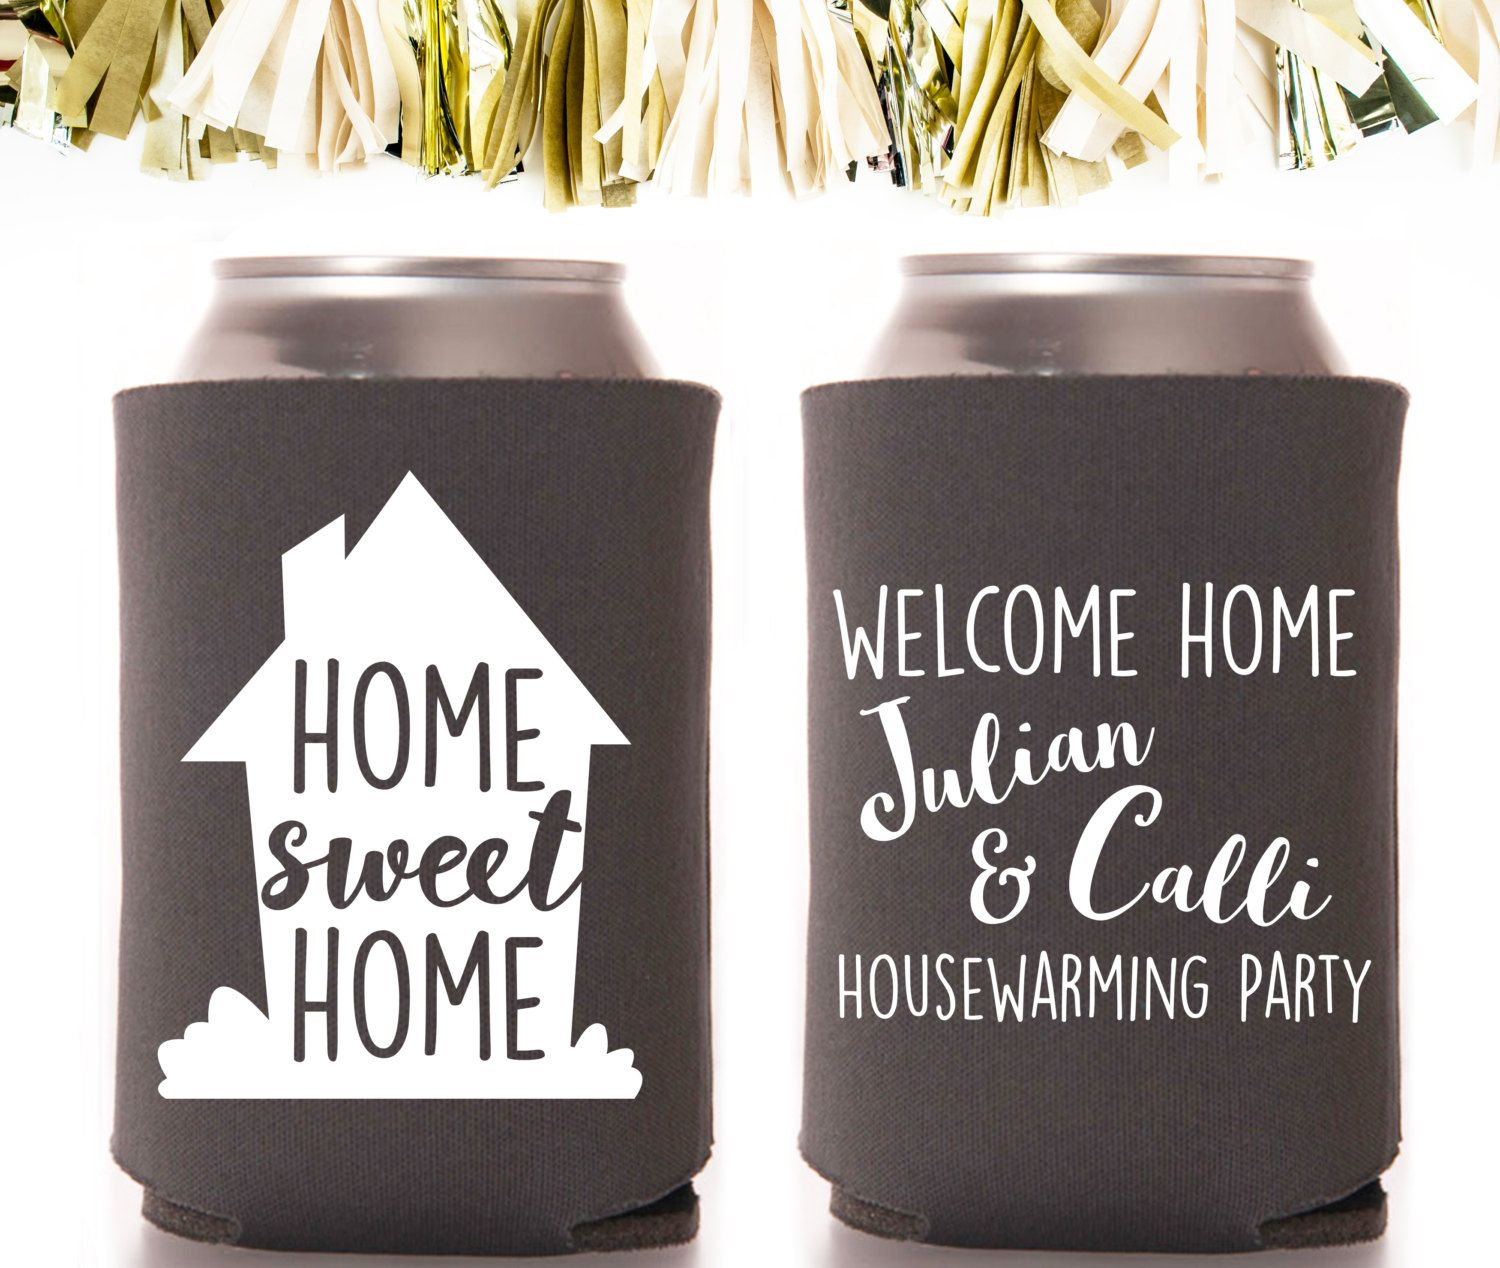 Housewarming Home Sweet Home Party Favors: Custom and Personalized ...